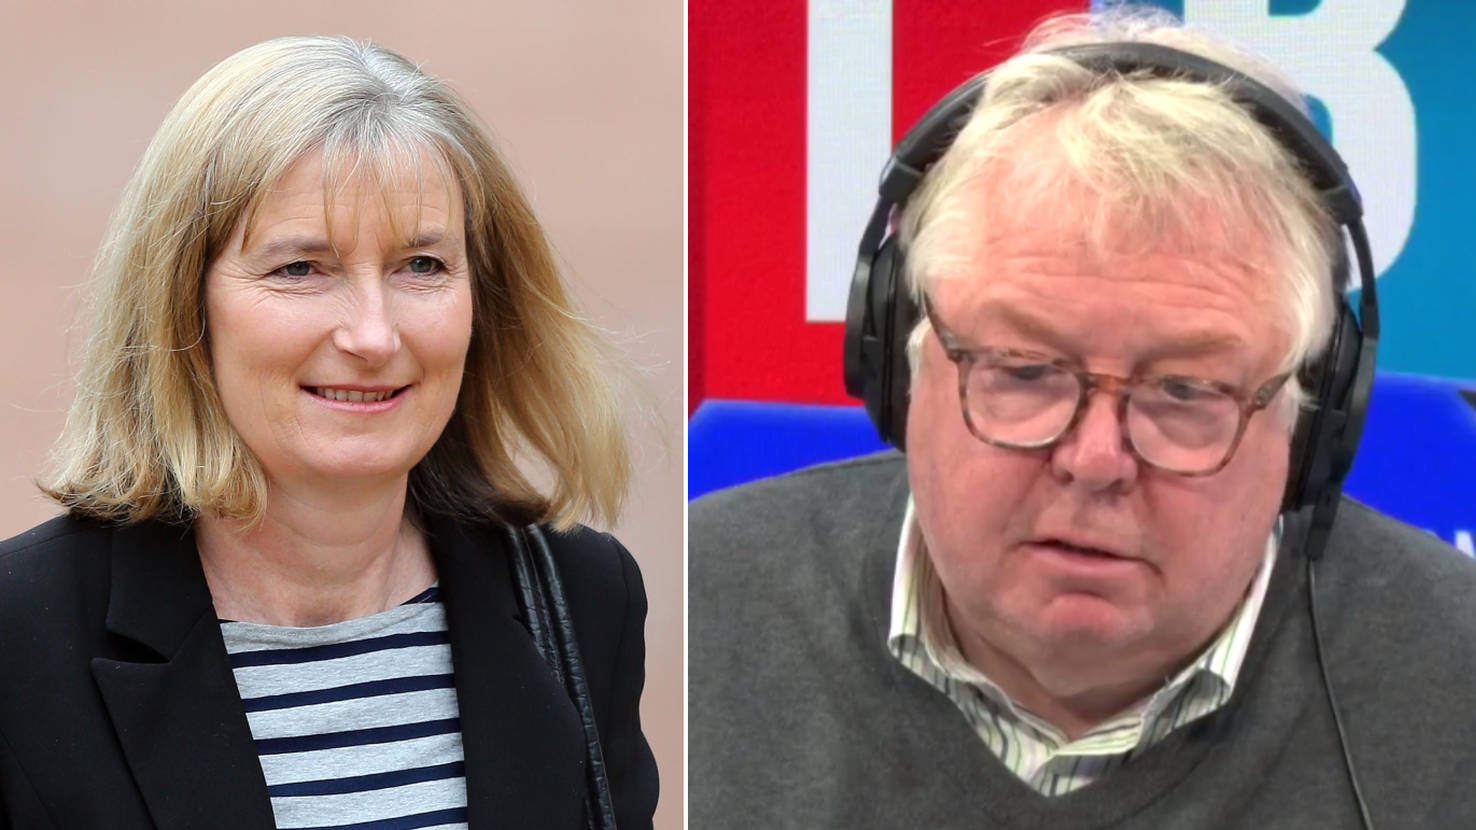 Nick Ferrari Tells Lib Dem MP Parliament Is Split Because Of Them